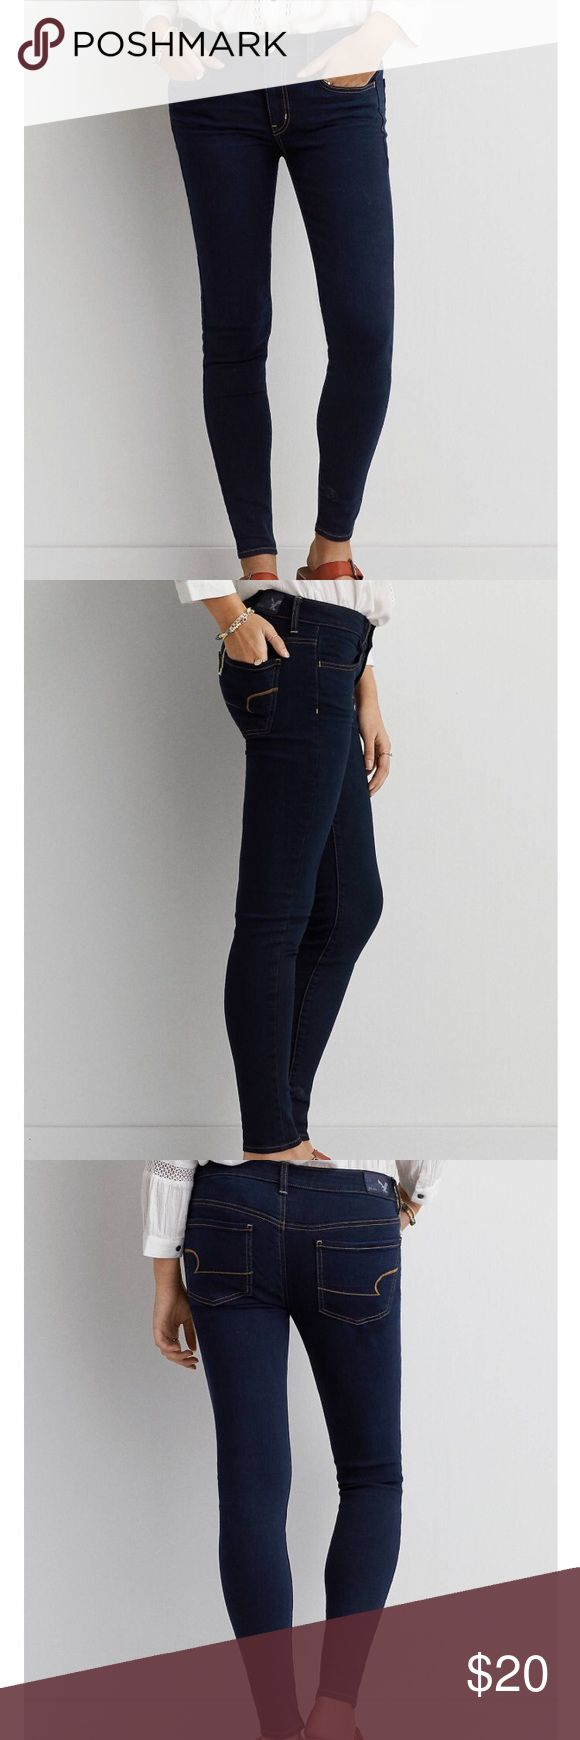 """American eagle super stretch jean Super stretch jegging , dark blue size 2 short . Super Stretch denim Legging-like fit Low 8.75"""" front rise Higher 14 1/8"""" back rise Skinniest 9.75"""" leg opening Extended sizes available online 55% Cotton, 18% Polyester, 18% Tencel, 8% Viscose, 1% Elastane Machine Wash American Eagle Outfitters Jeans Skinny"""